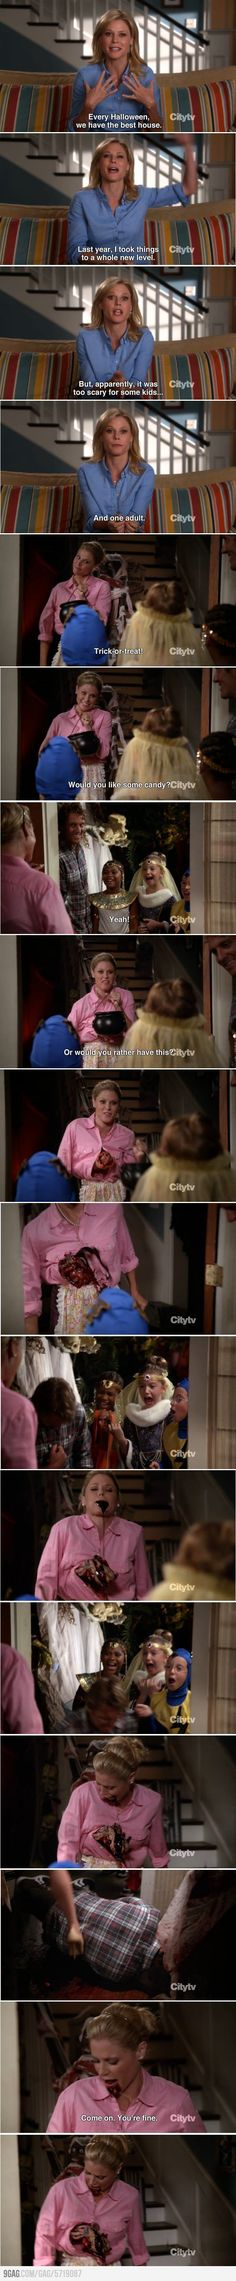 Lol I can only hope to be that awesome! :D    #ModernFamily #9Gag